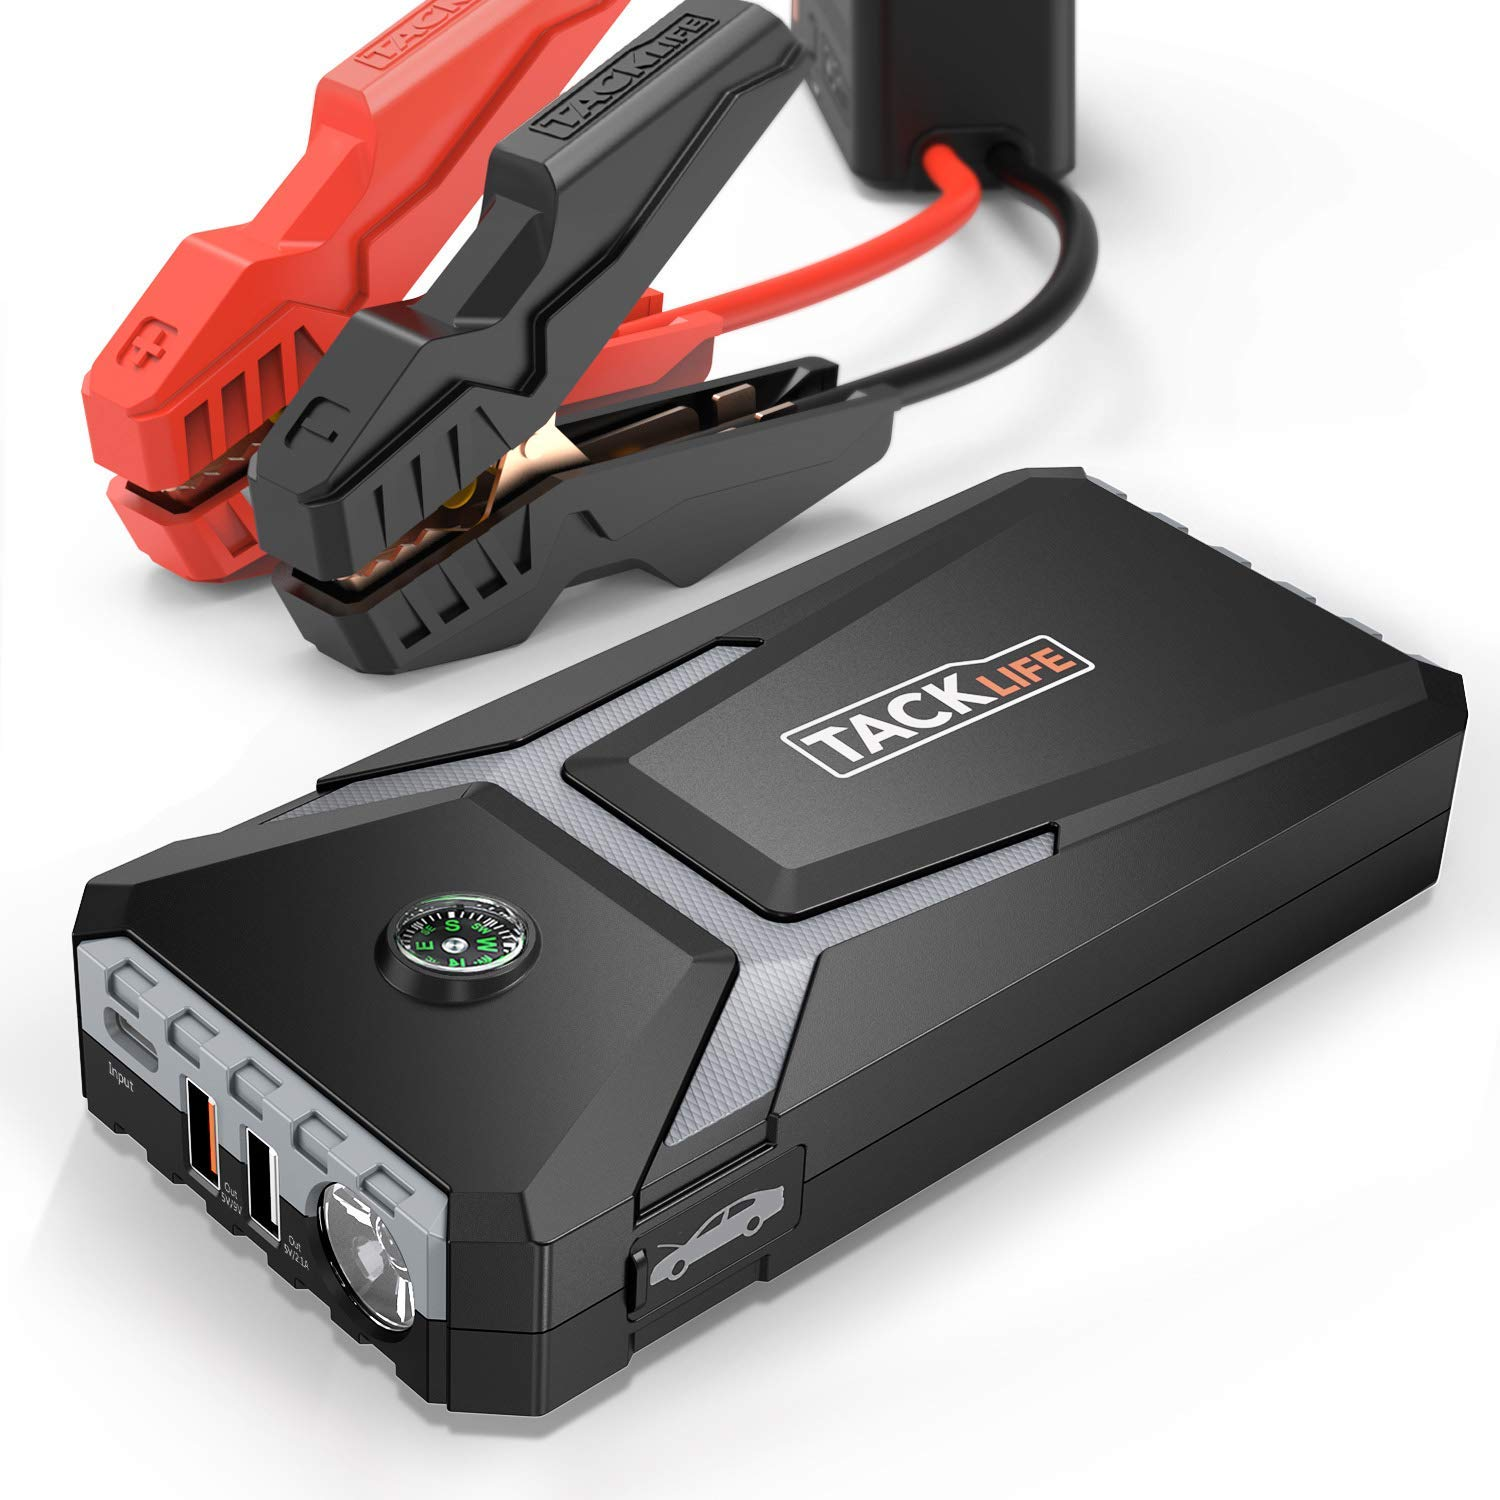 TACKLIFE Mini Jump Starter T8 MIX – 500A Peak Current, 12V, Jump pack (up to 4.0L Gas, 2.0L Diesel), 12000mAh